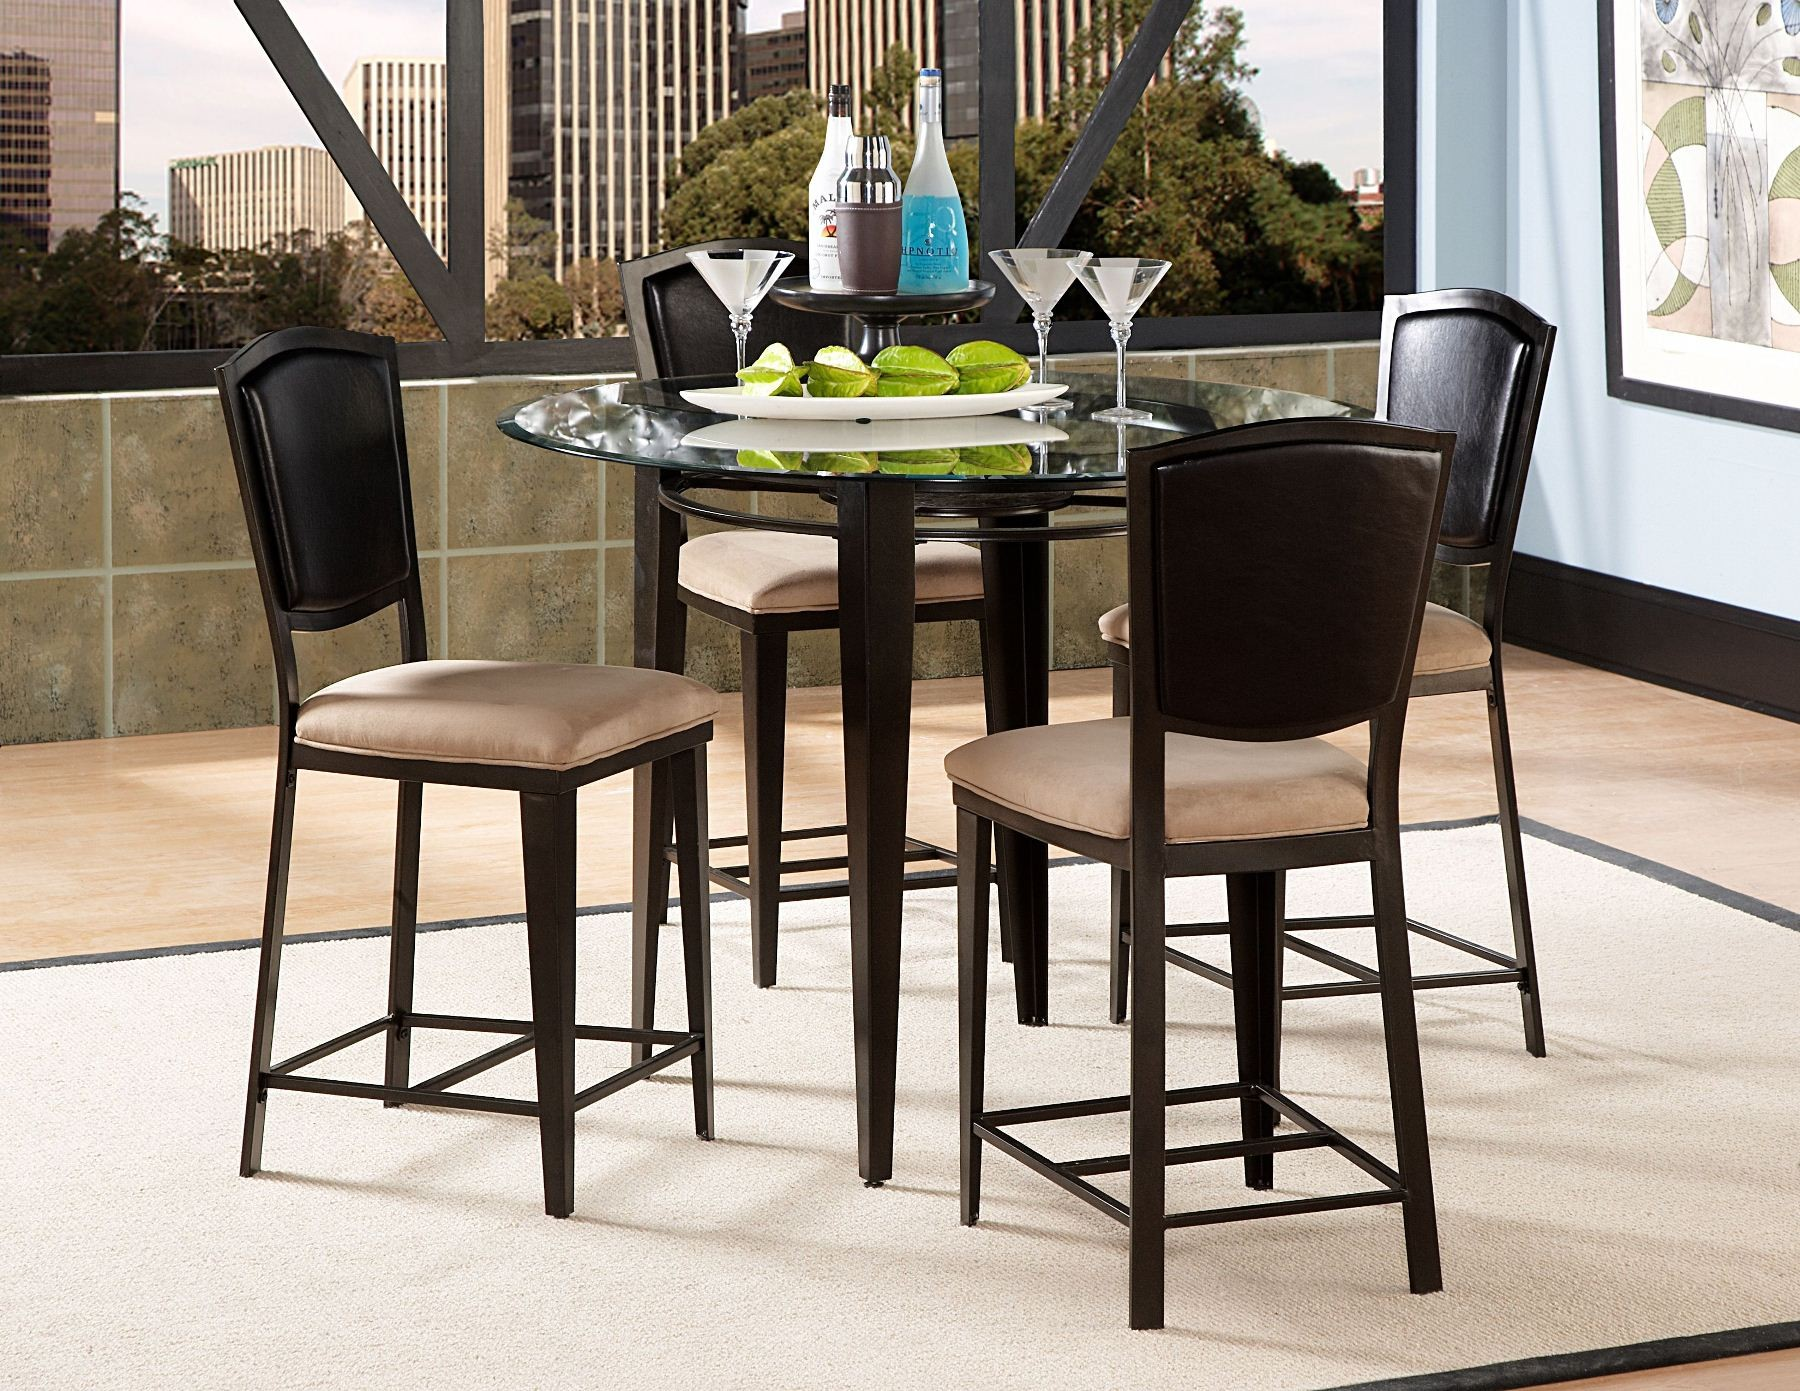 Rockdale counter height dining room set from homelegance for Counter height dining room sets